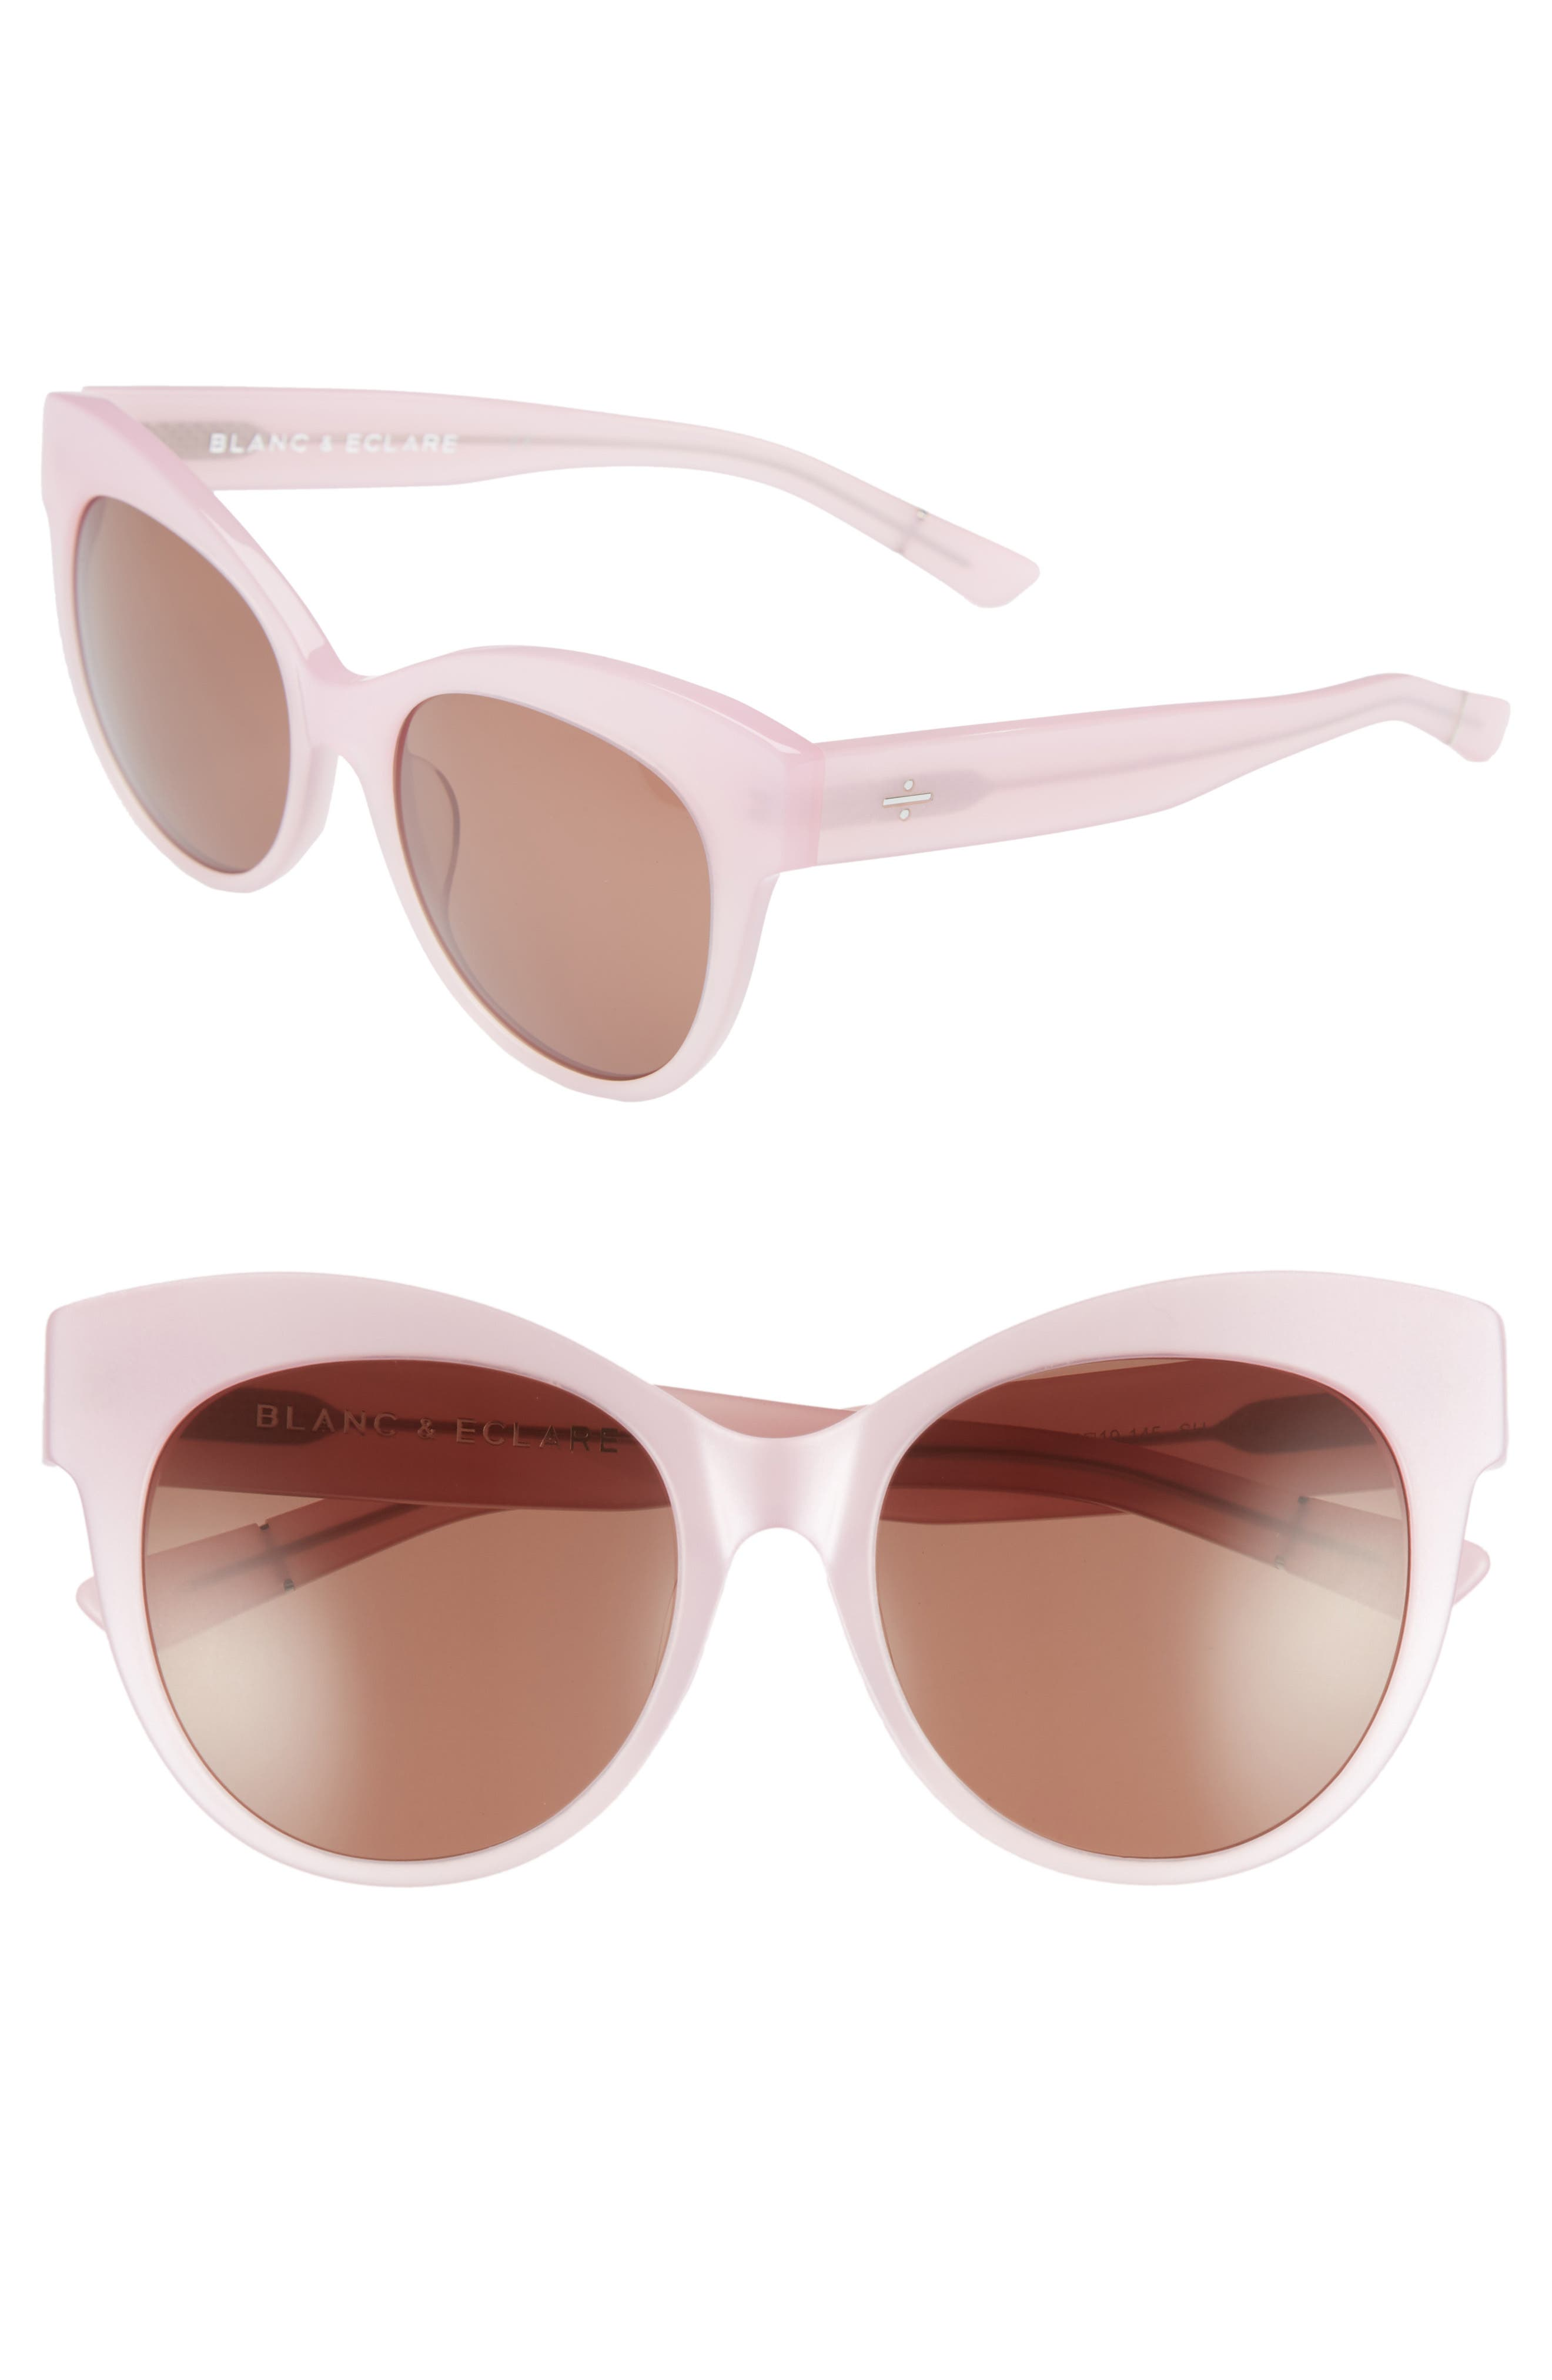 BLANC & ECLARE Paris 55mm Polarized Cat Eye Sunglasses,                         Main,                         color, Blush